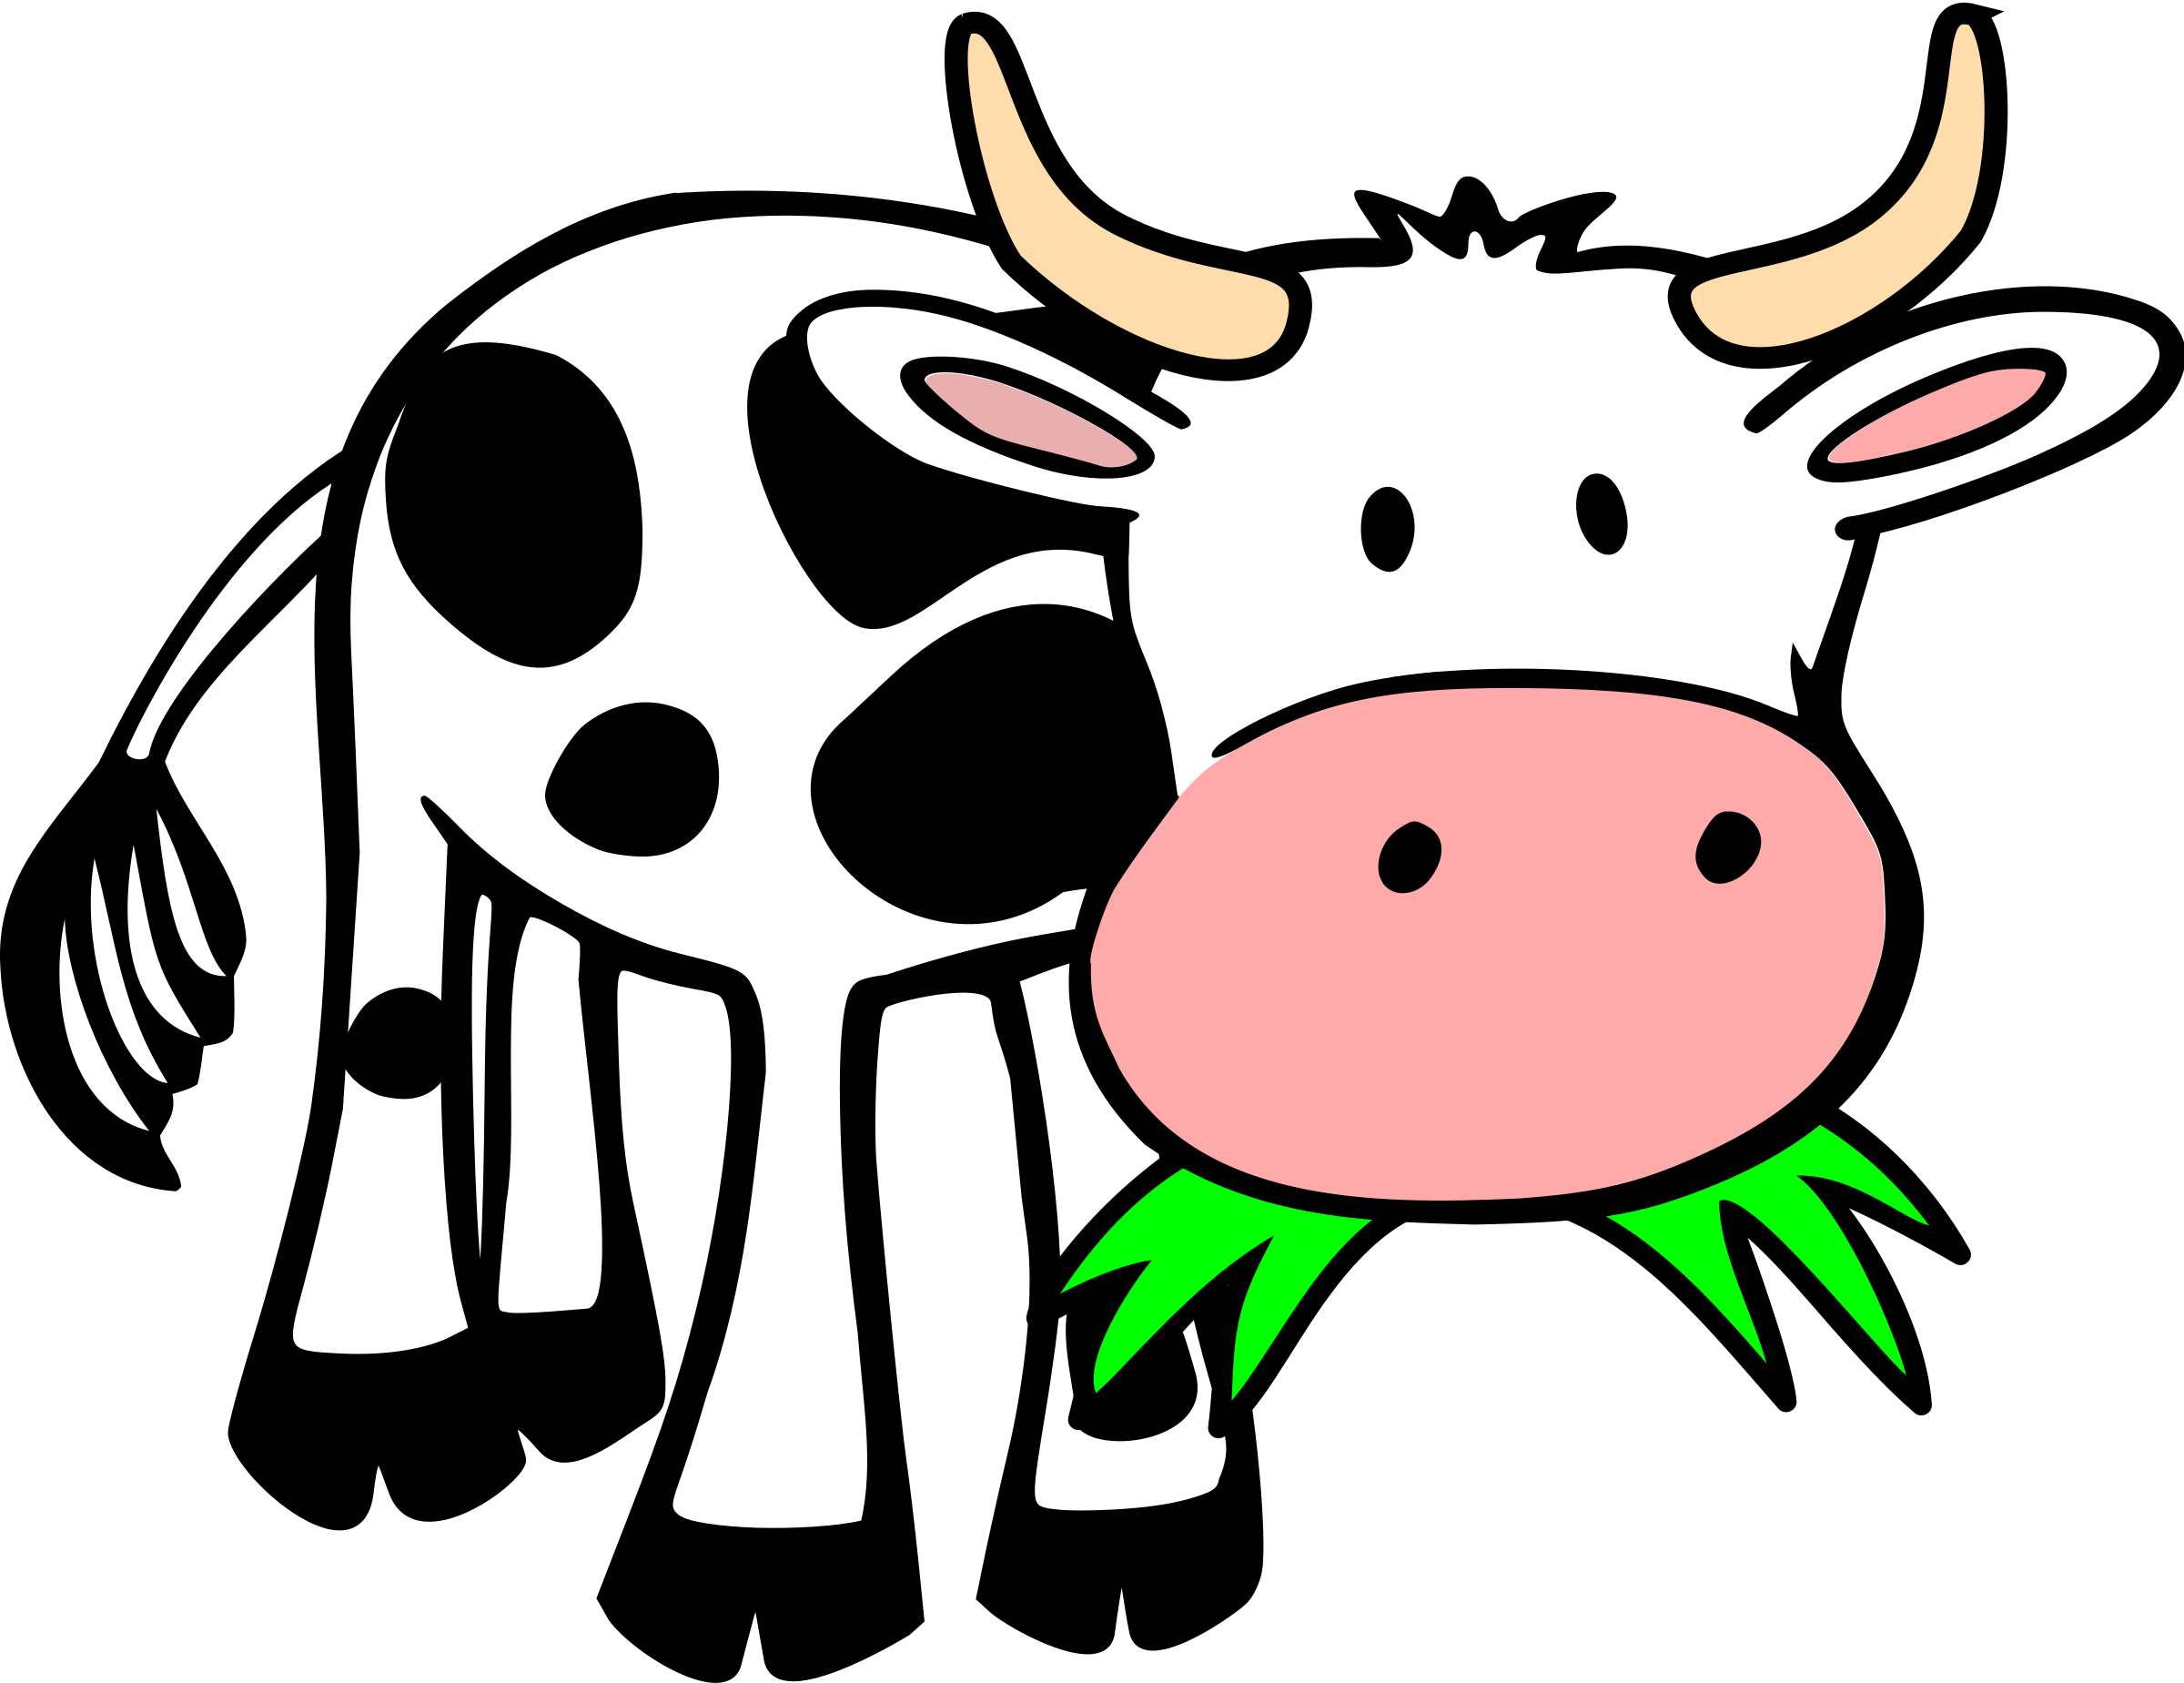 Cows clipart fence. Grass eating cow by